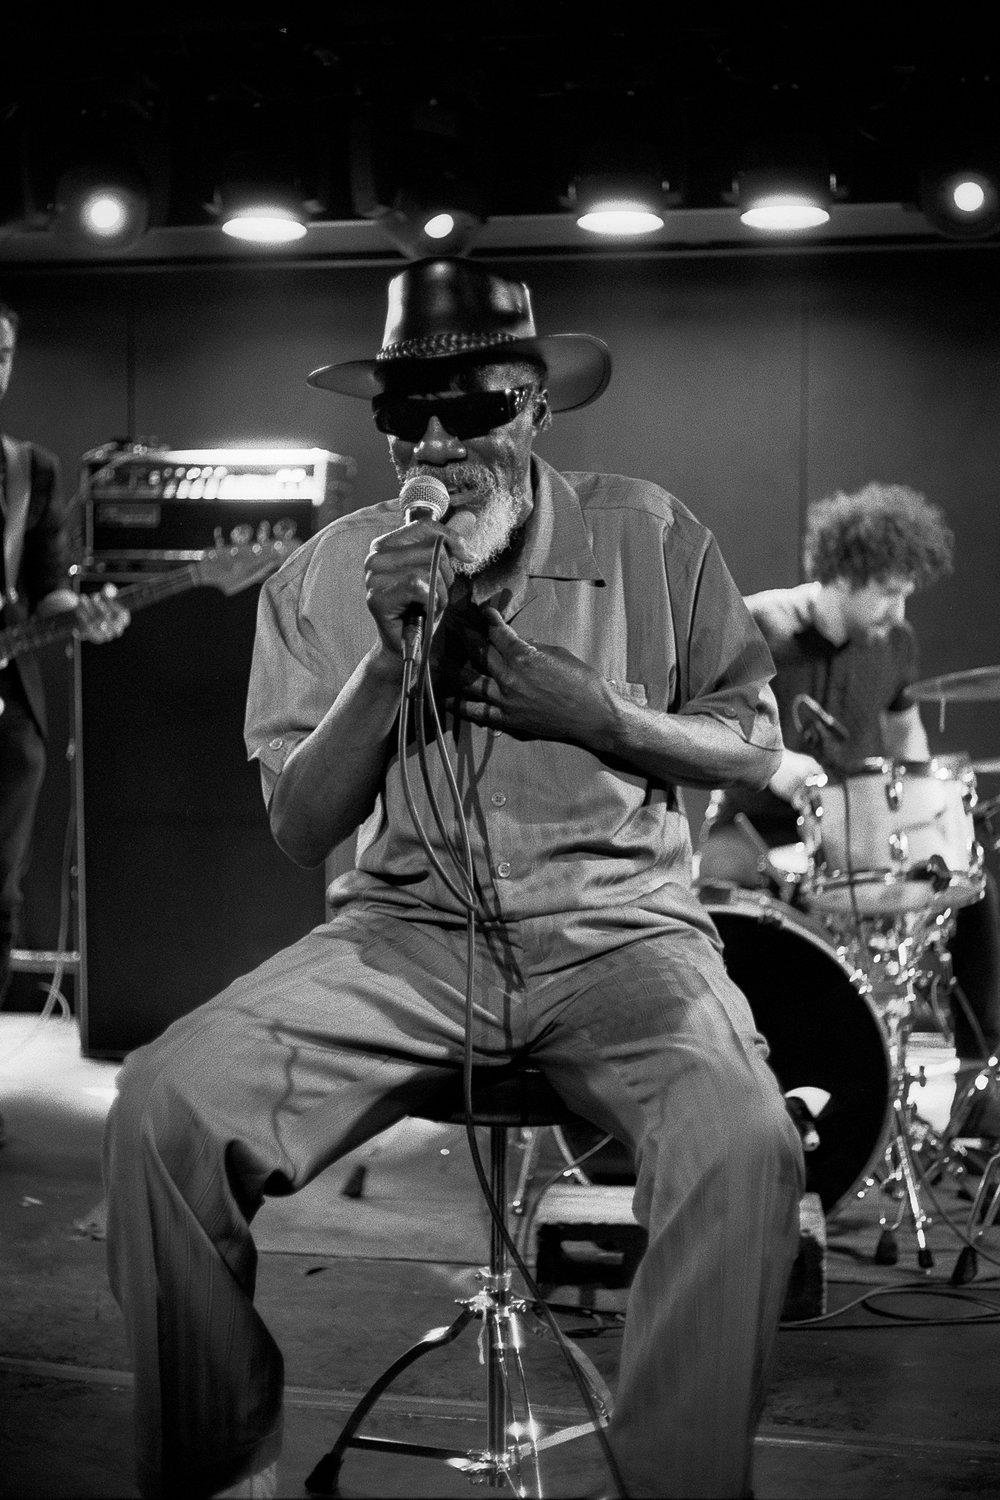 robert-finley-brooklyn.jpg